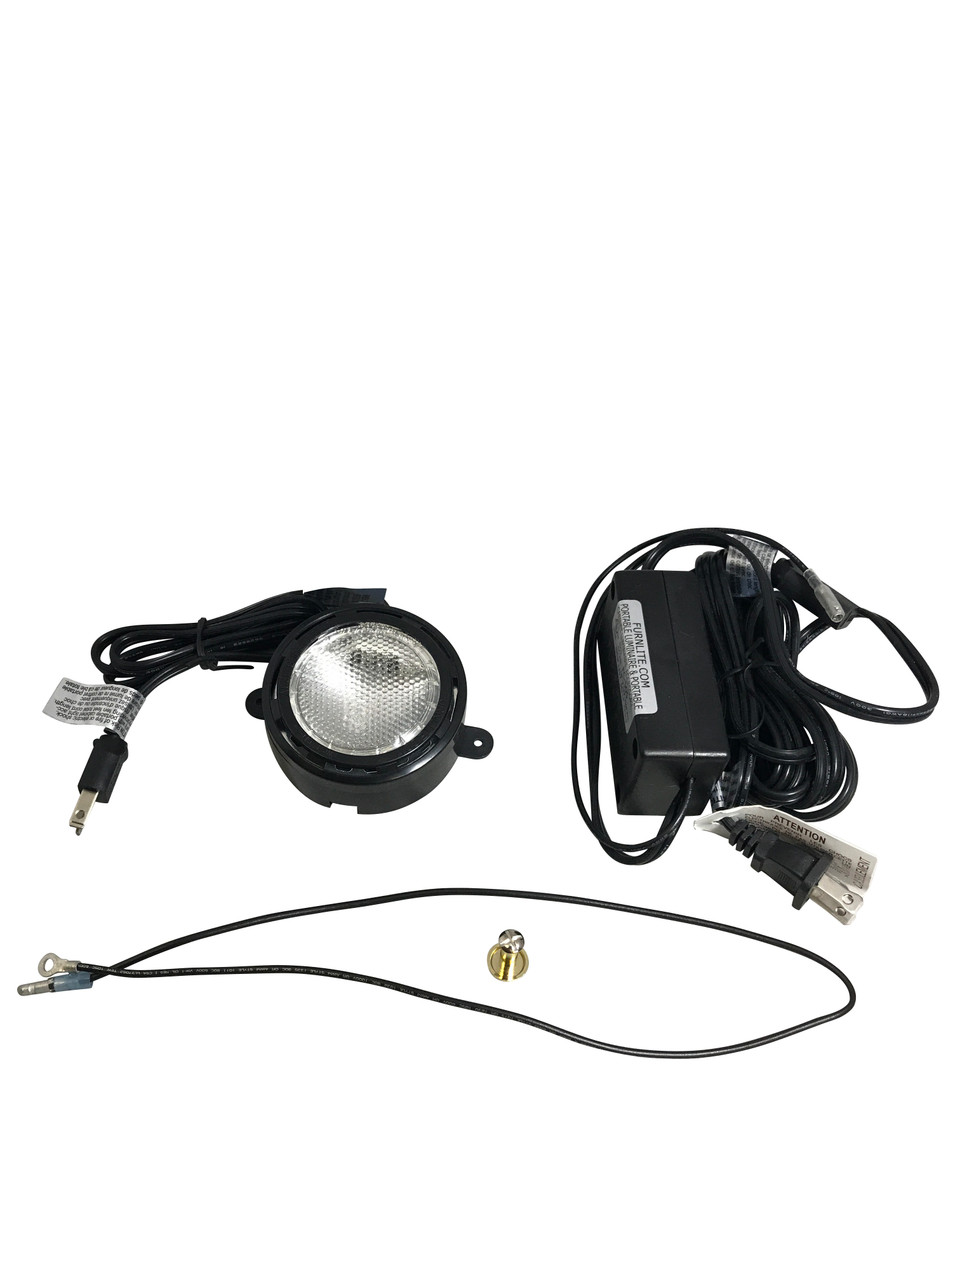 Puck light is a 120 volt light fixture with a 25 watt halogen bulb. It can be surface mounted or it can be installed in a cutout in the top panel of the cabinet. The diameter of the cutout is 3-3/8 inches. Kit includes Puck, Touch Lead, 3 stage Touch Dimmer, and Brass Touch Button. Perfect for use on Display Cabinets.  Furnlite FC-737 Black